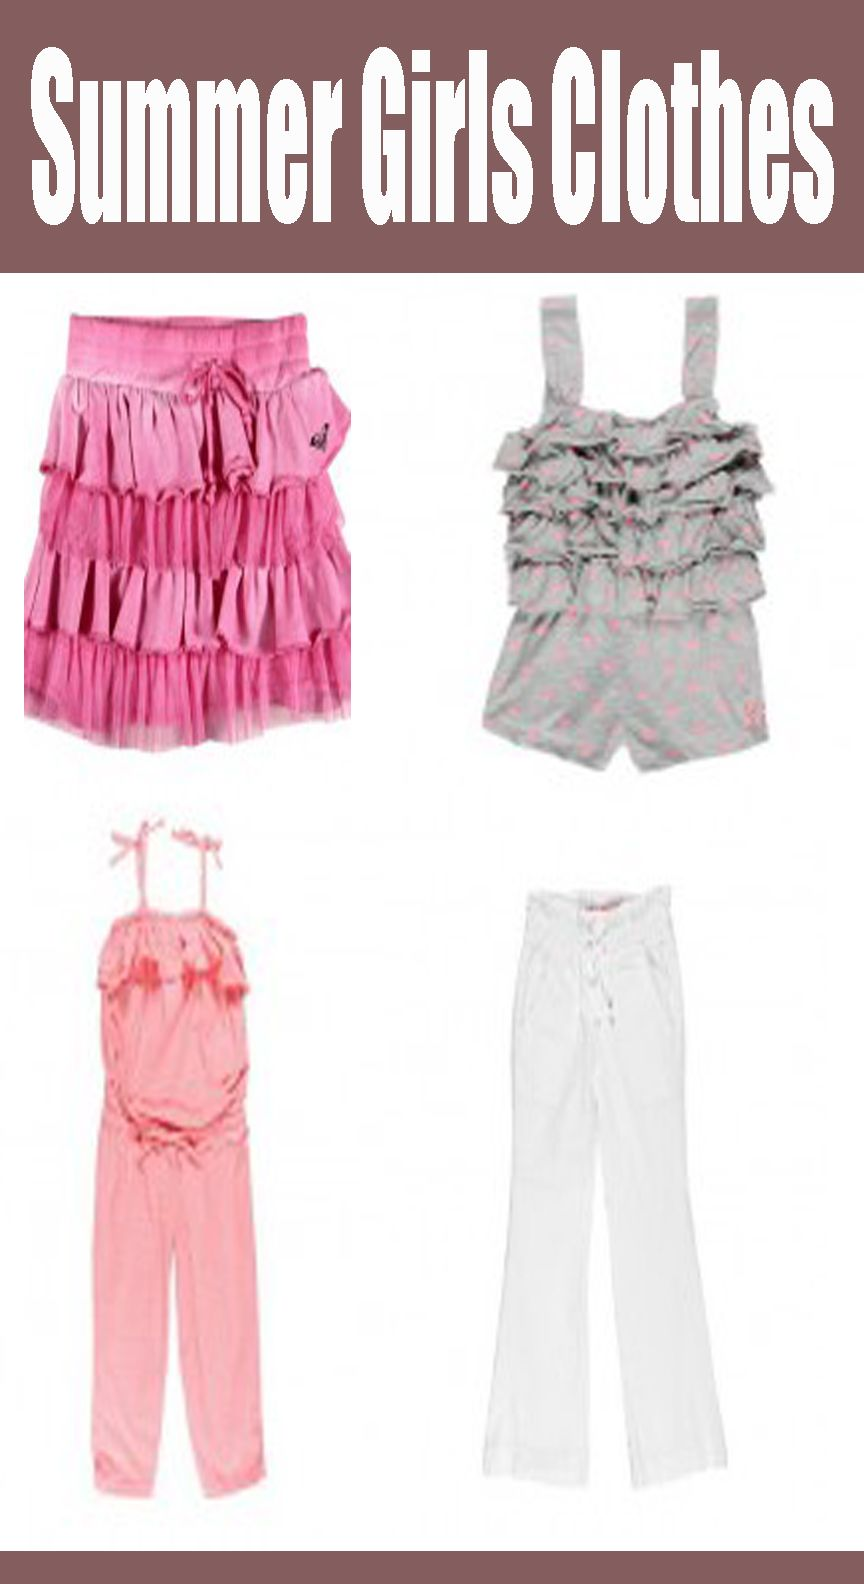 Summer Girls Clothes